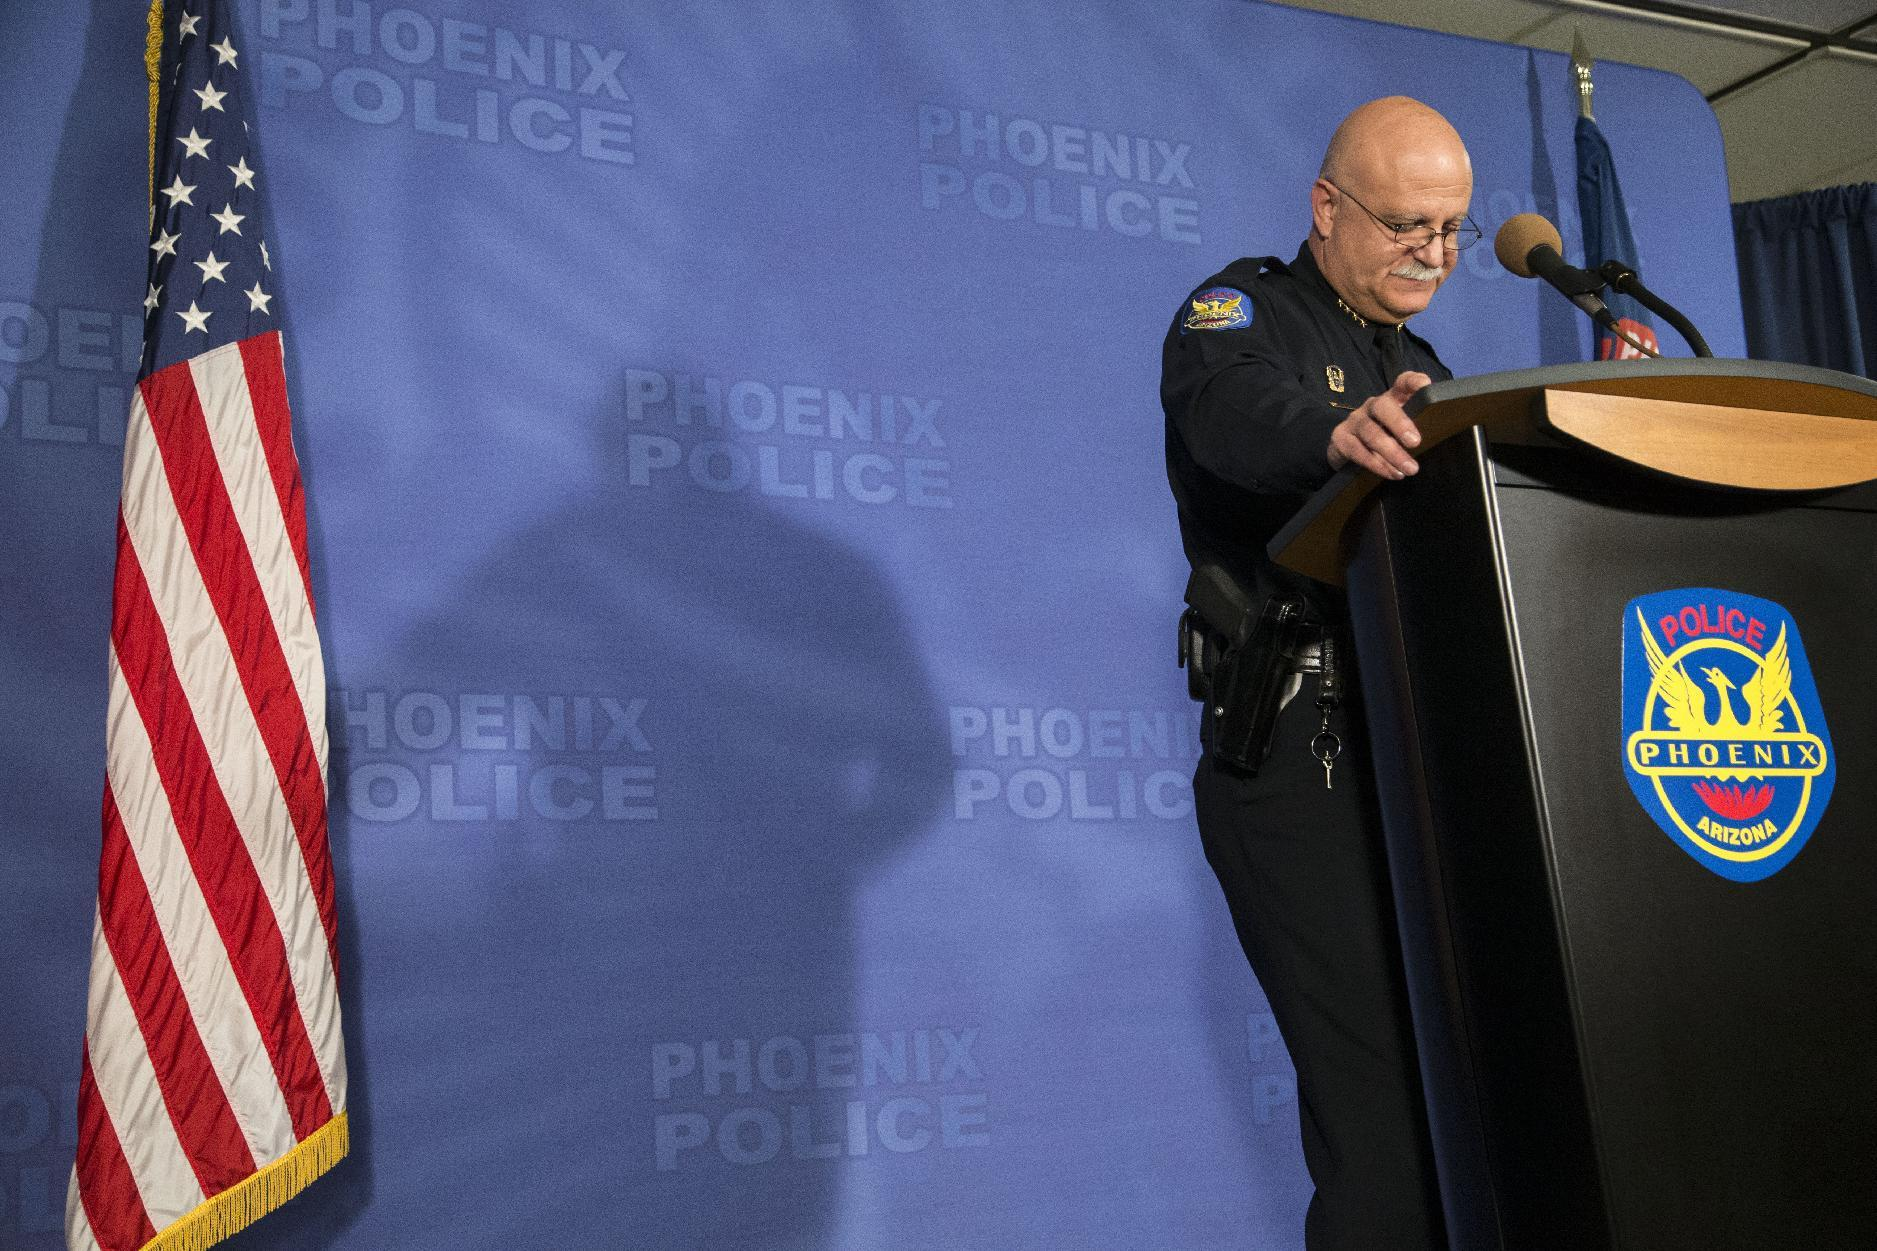 Phoenix police chief fired after union strife